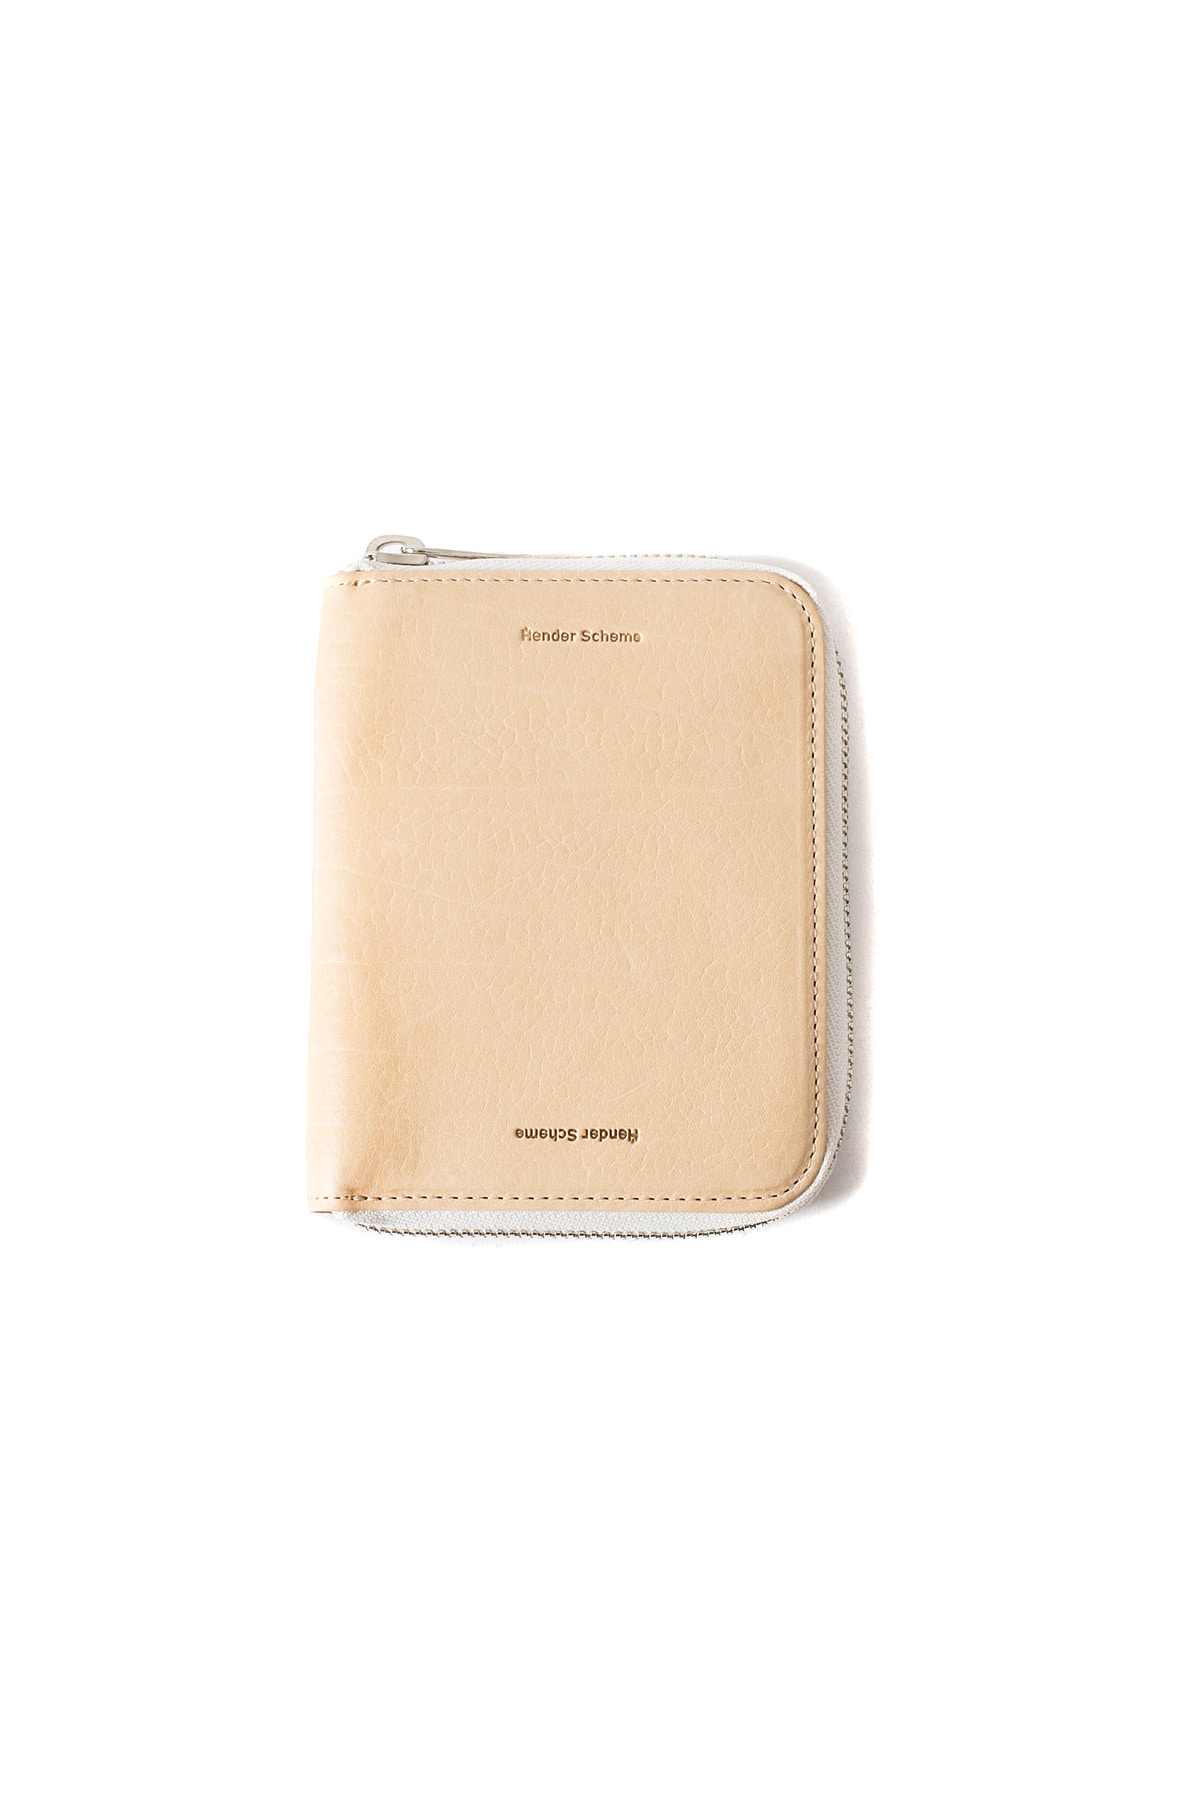 Hender Scheme : Square Zip Purse (Natural)